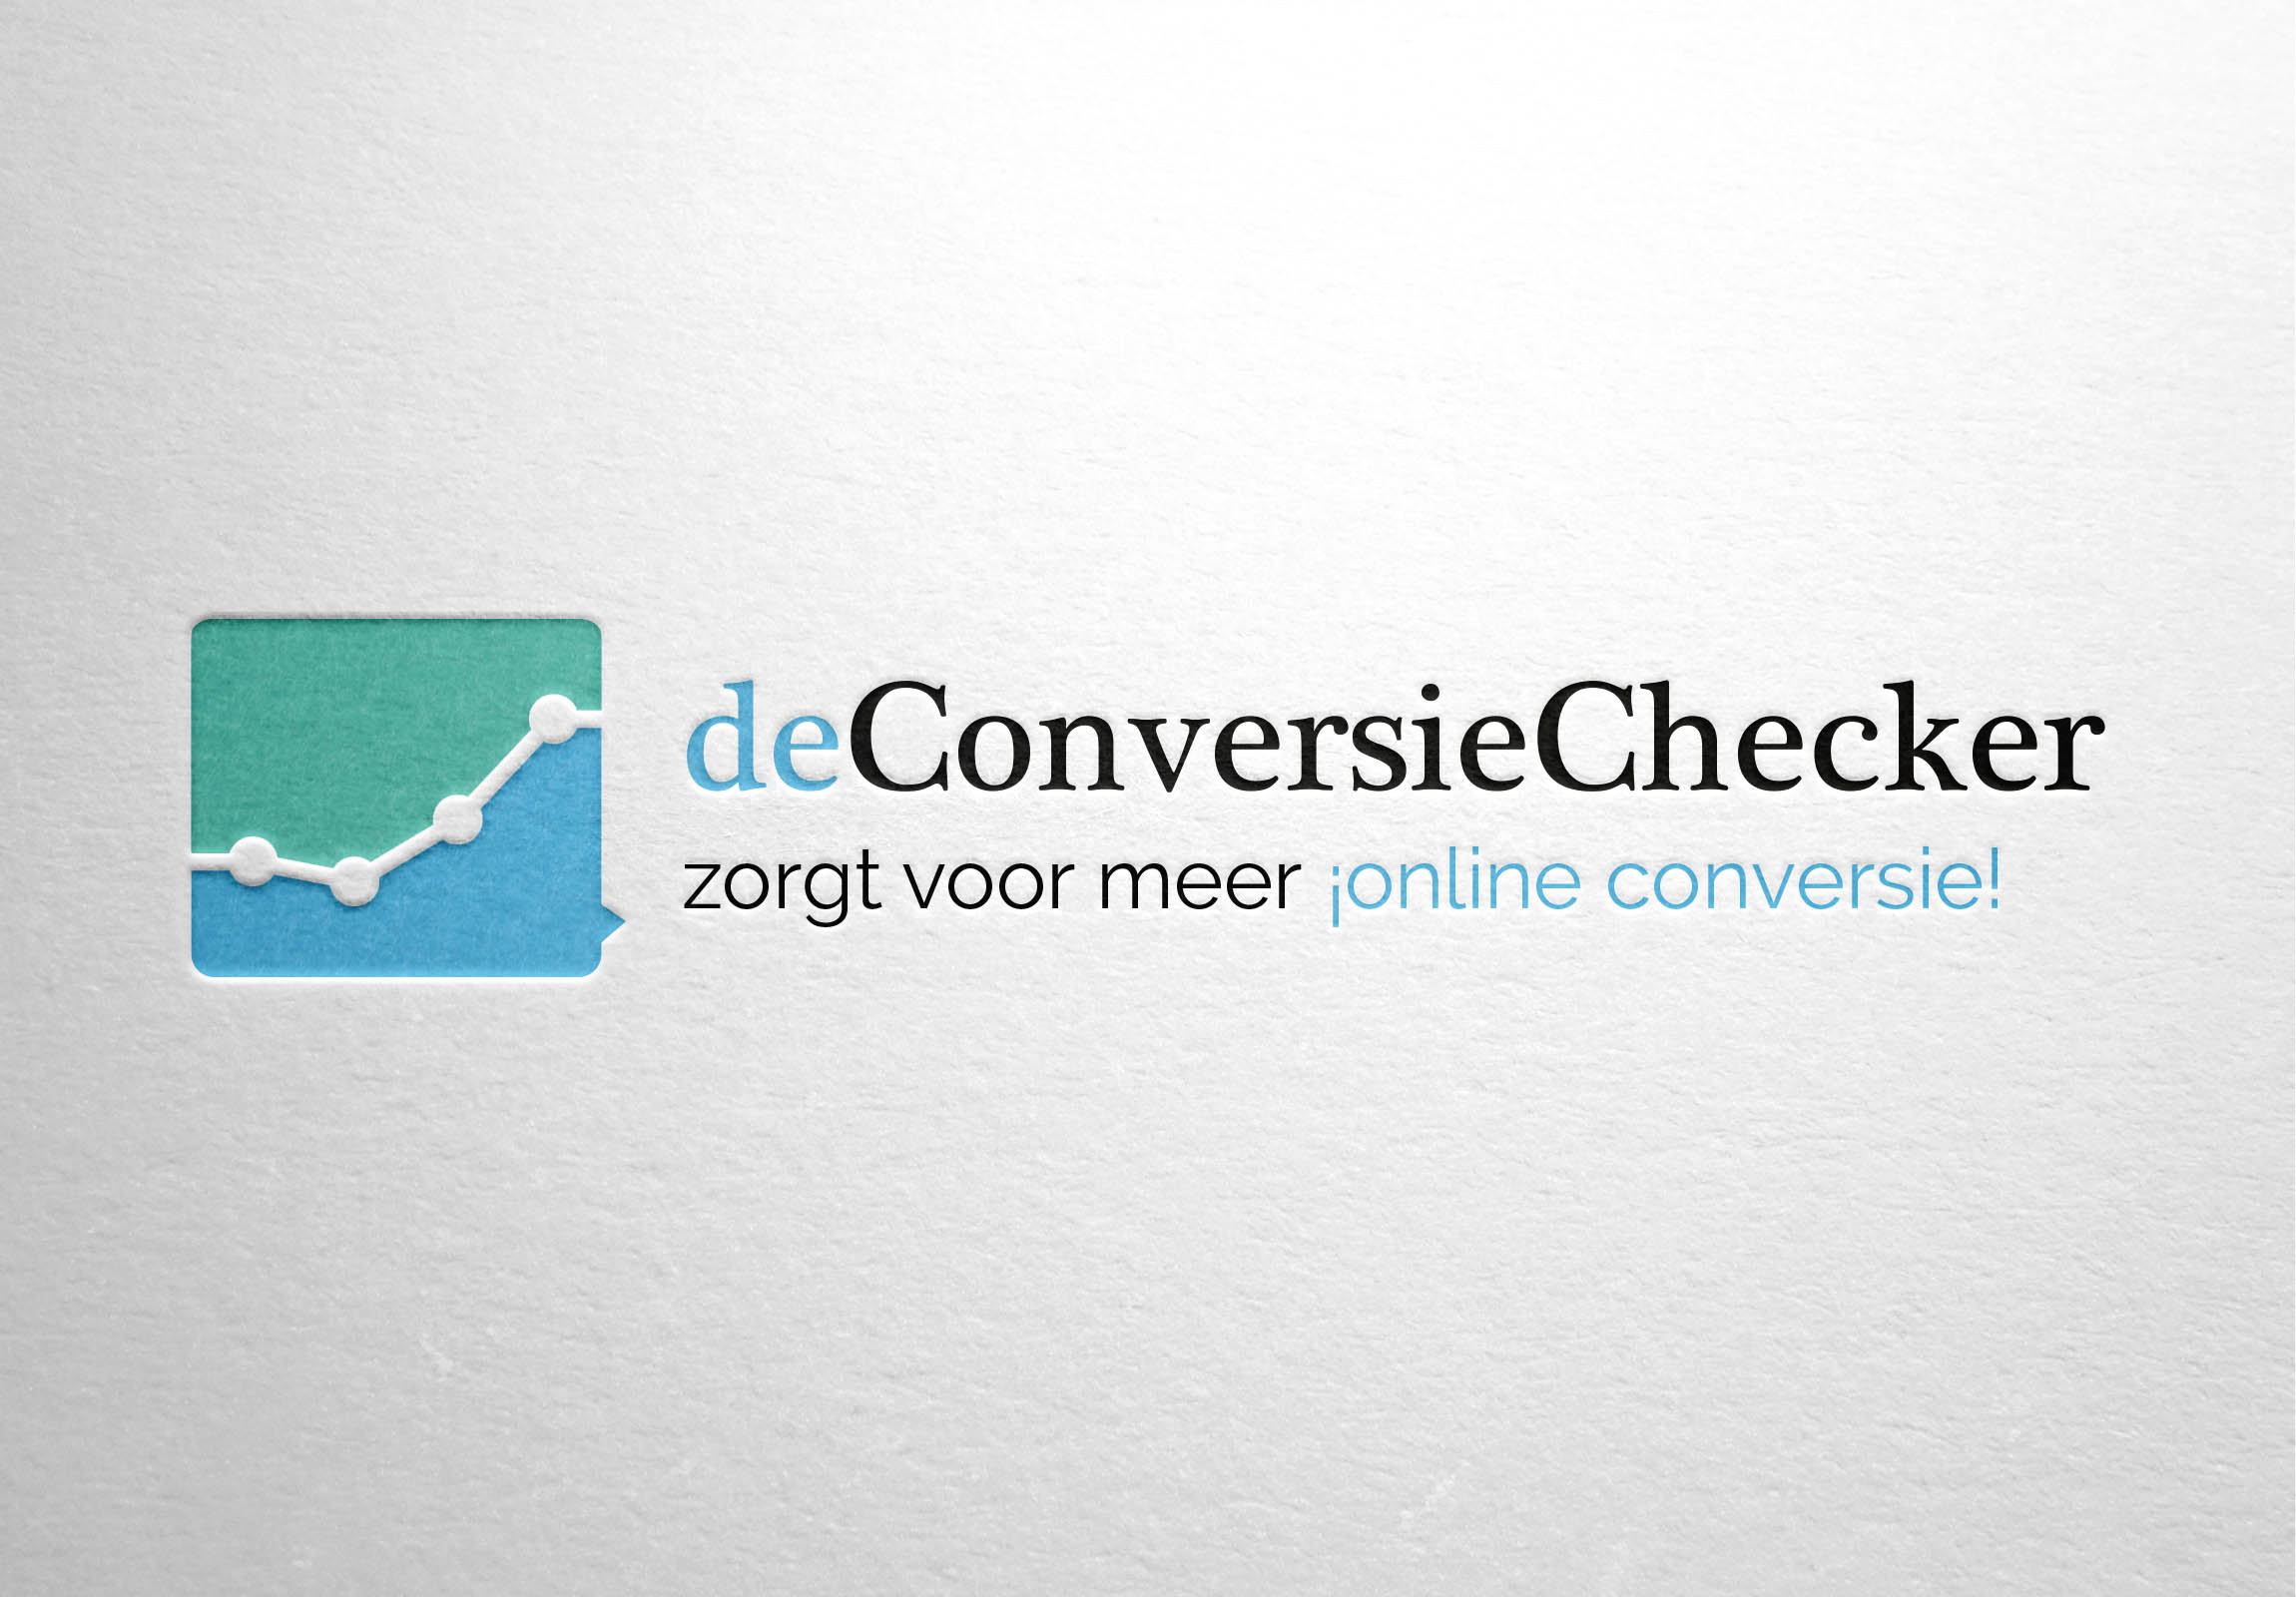 de-conversie-checker